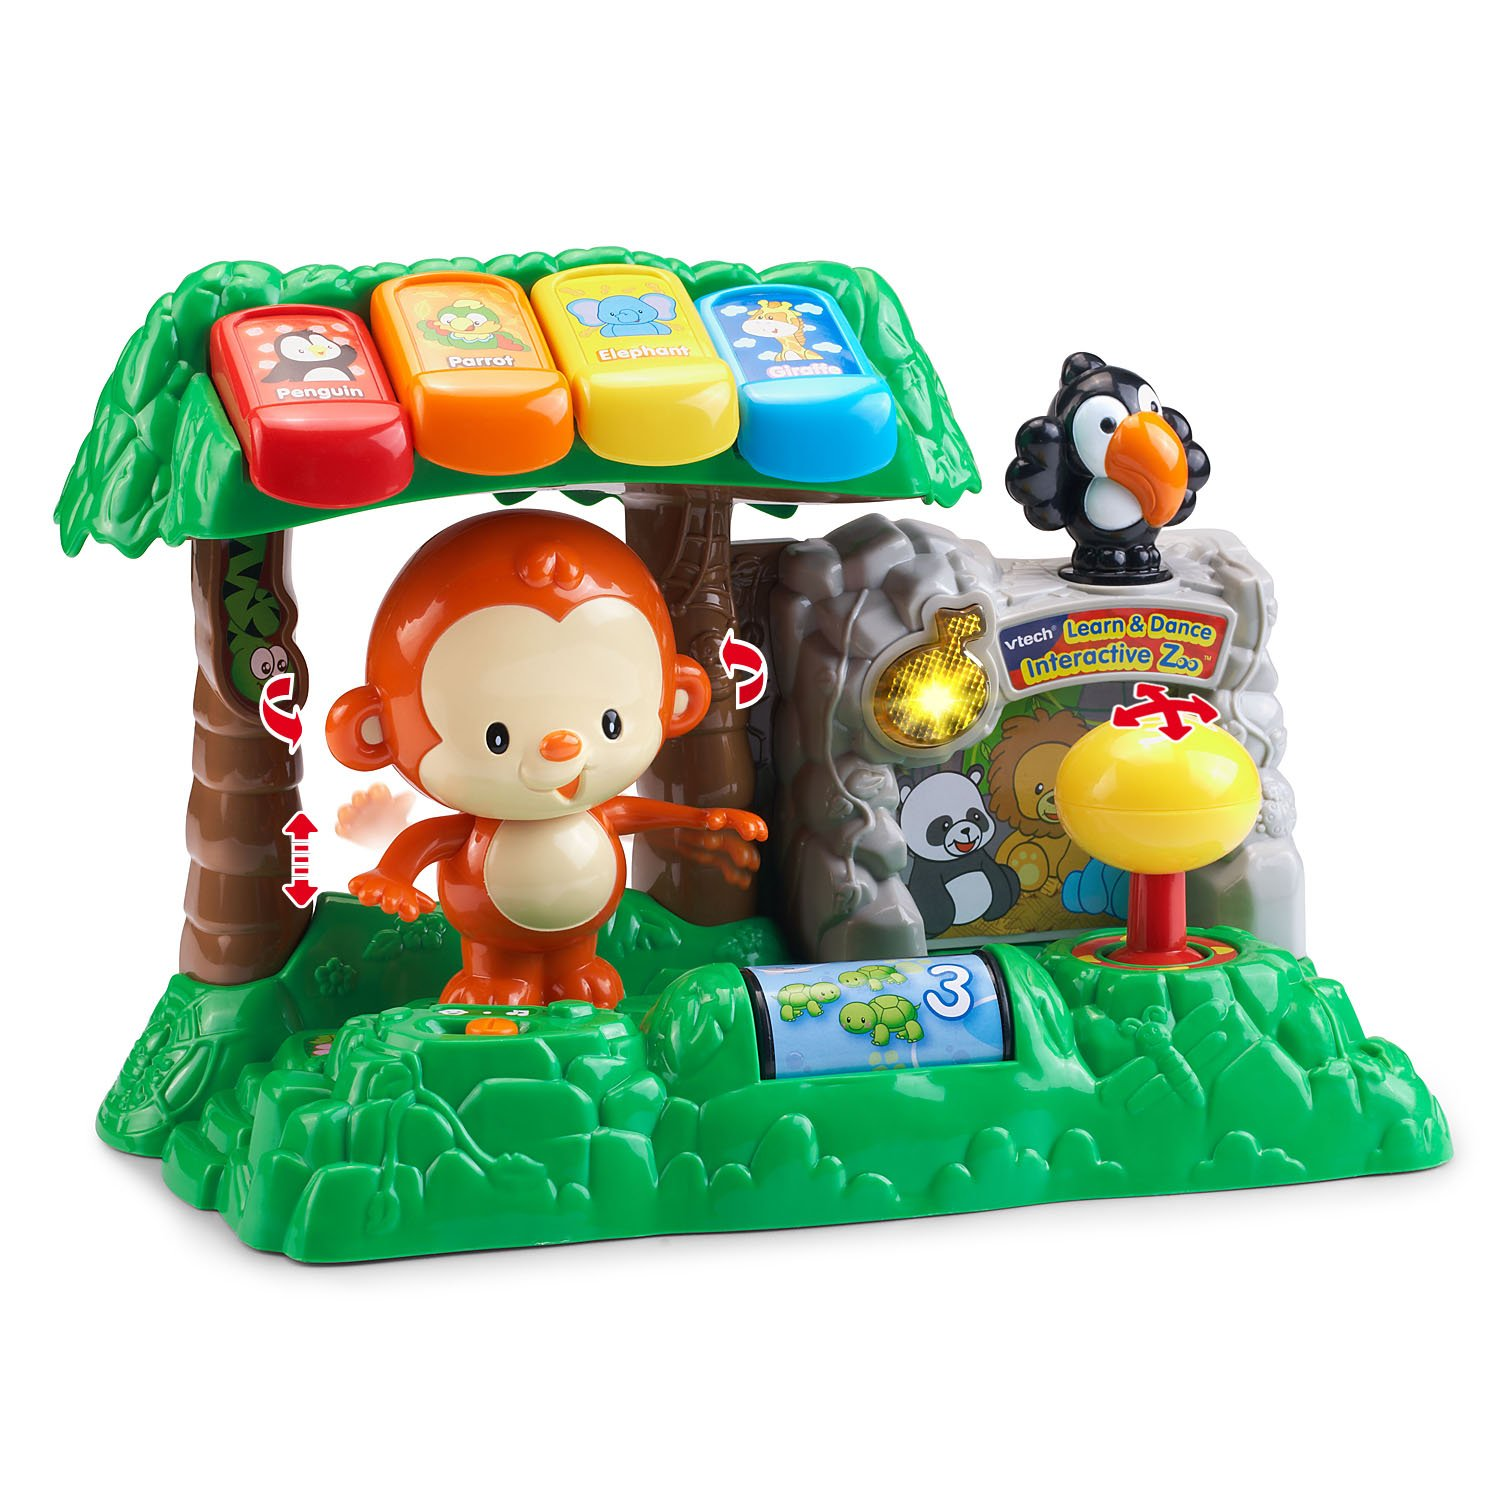 Amazon VTech Learn and Dance Interactive Zoo Toys & Games